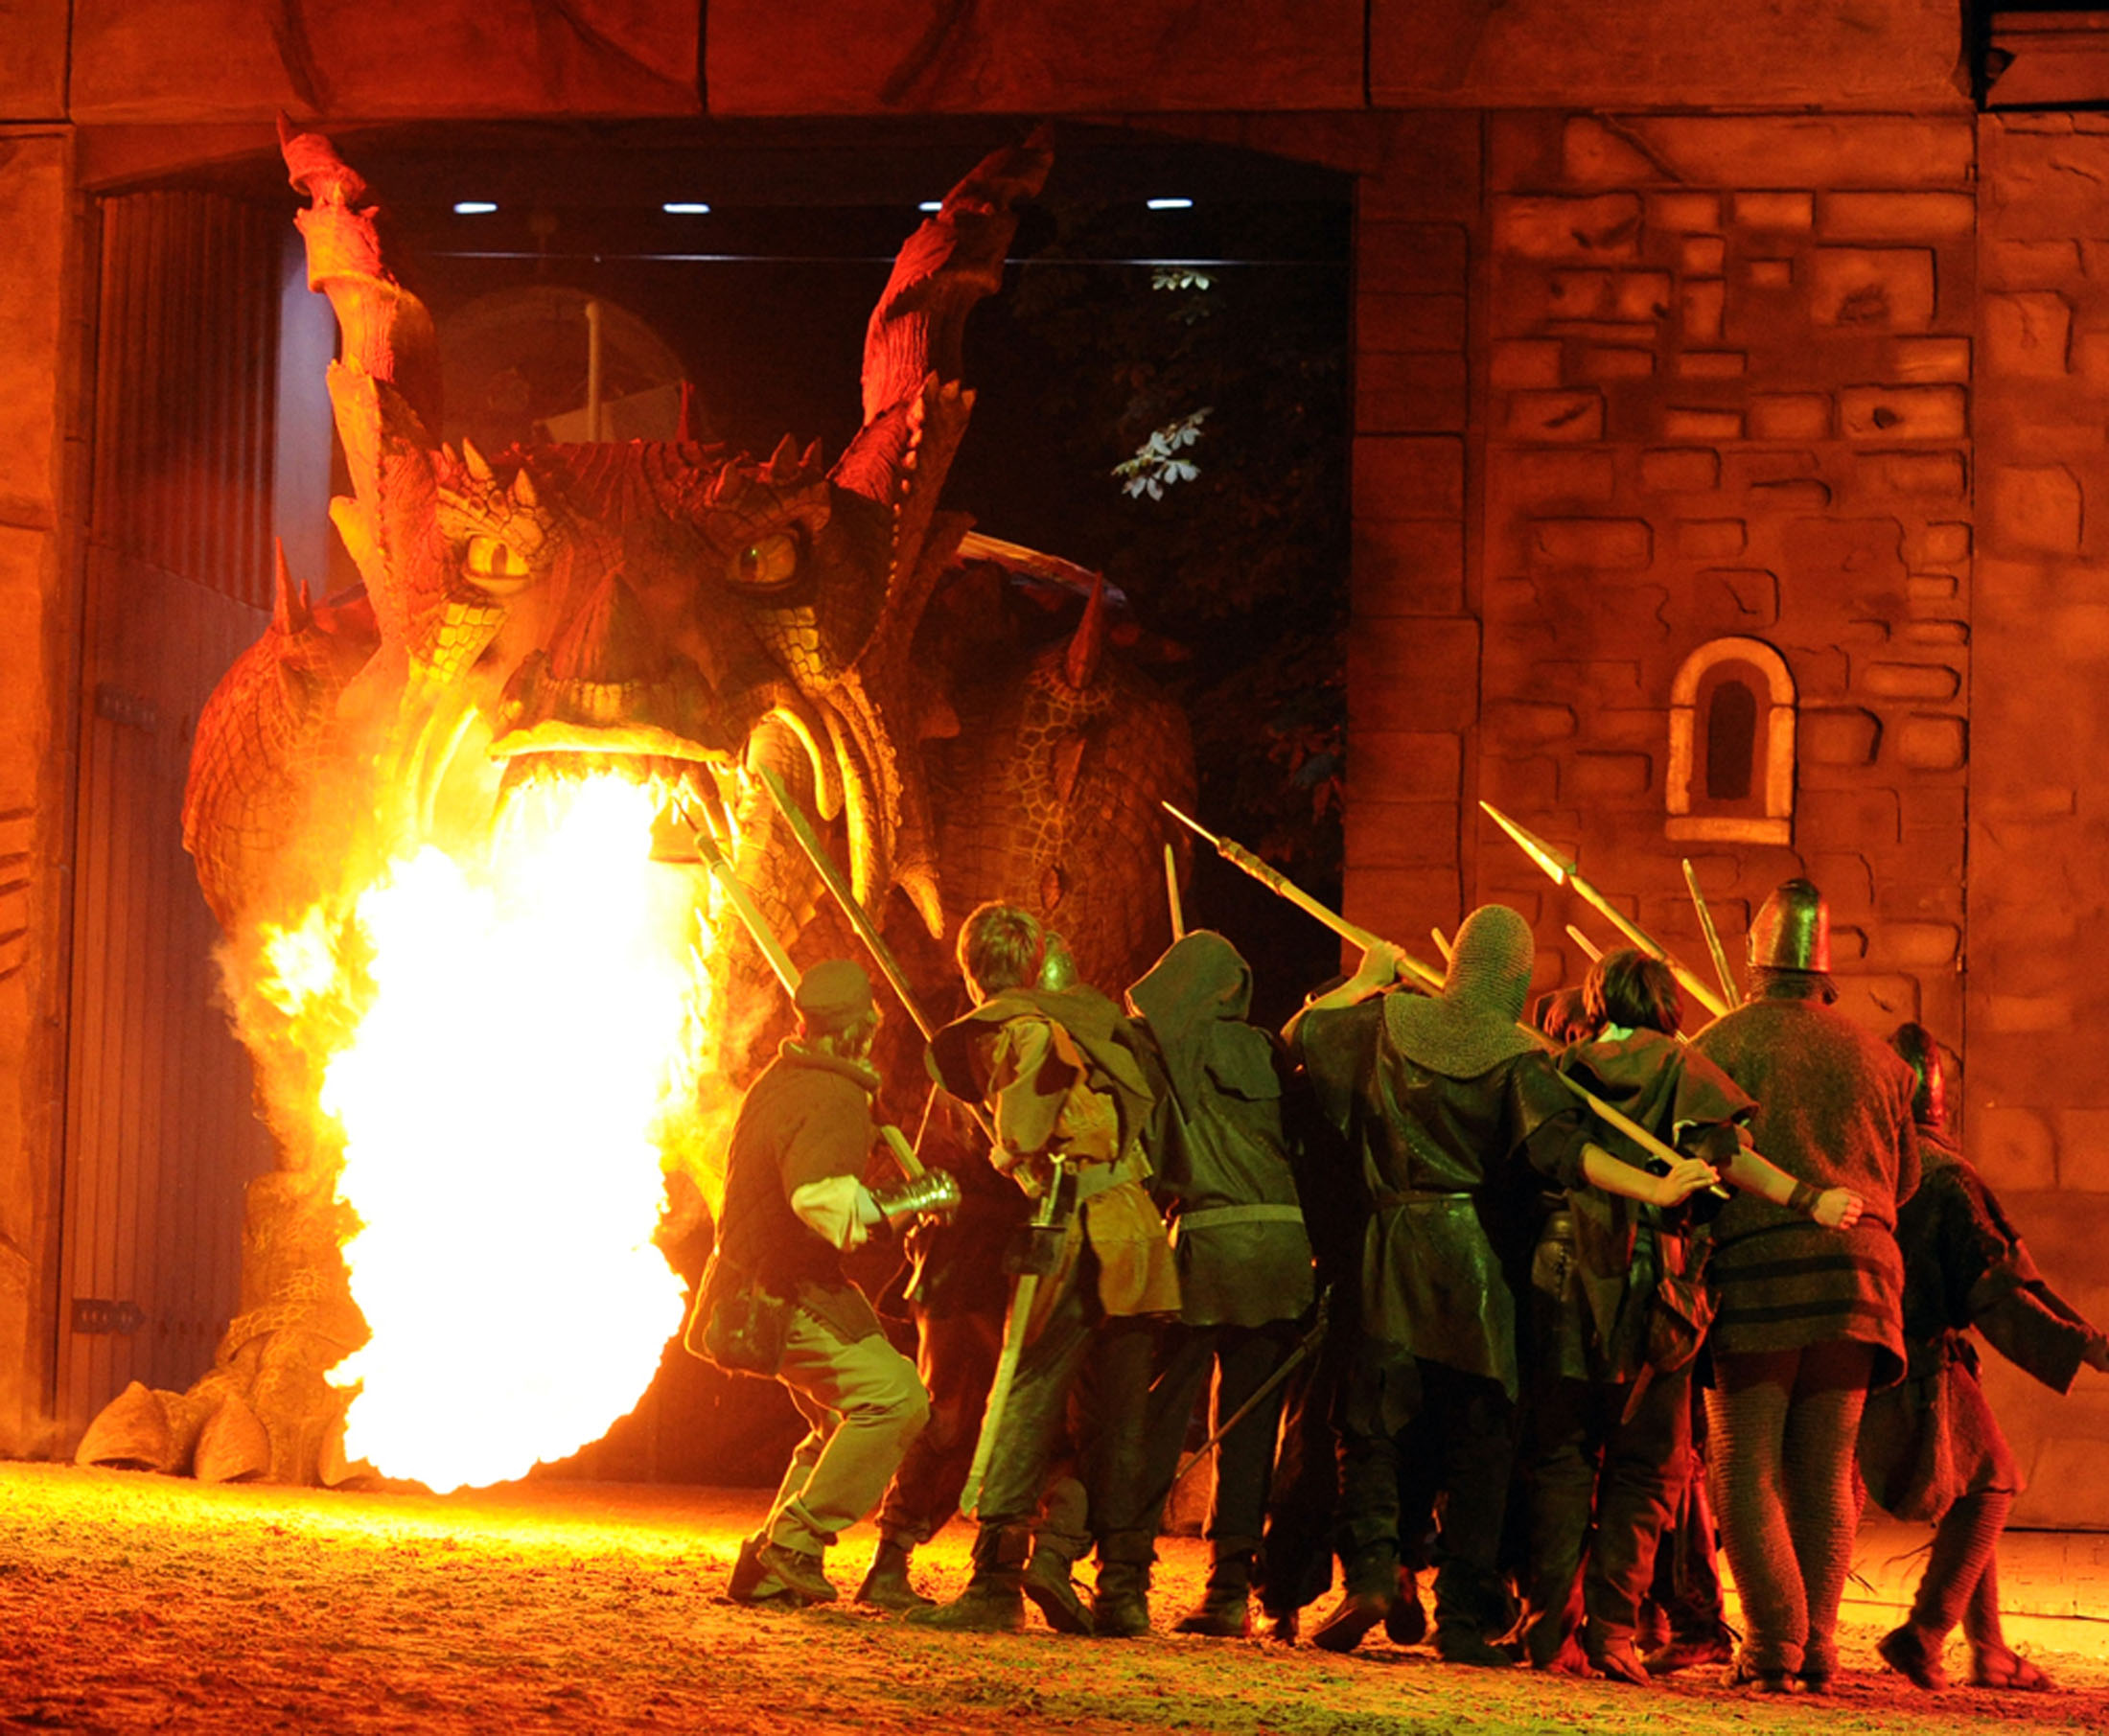 The Dragon Slaying Festival (Drachenstich) uses the world´s largest walking robot, a 15-metre-long, fire-breathing dragon - Further Drachenstich